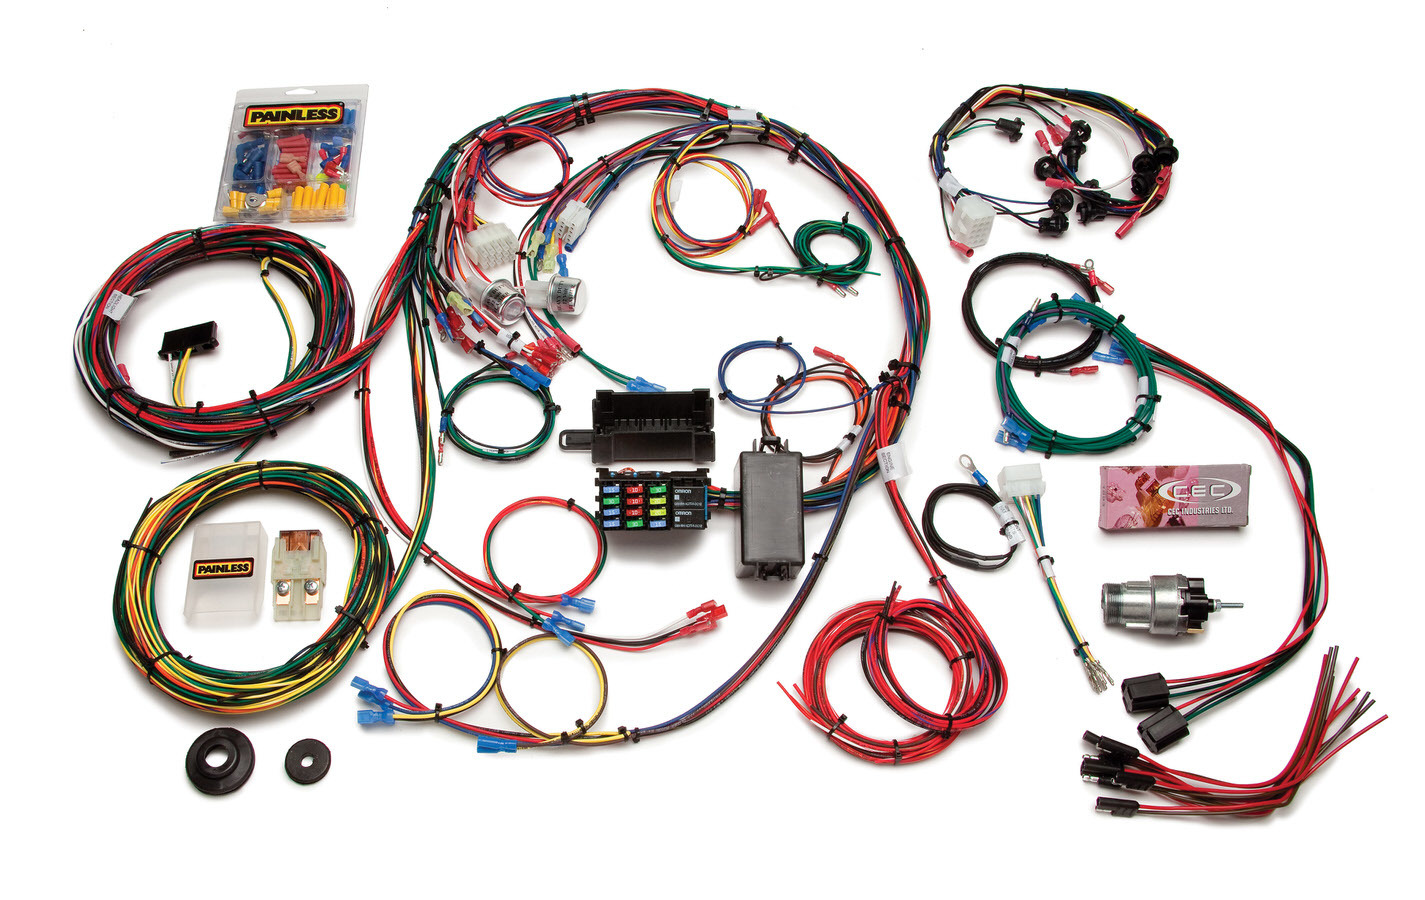 Painless Wiring 20121 Car Wiring Harness, Direct Fit, Complete, 22 Circuit, Ford Mustang 1967-68, Kit